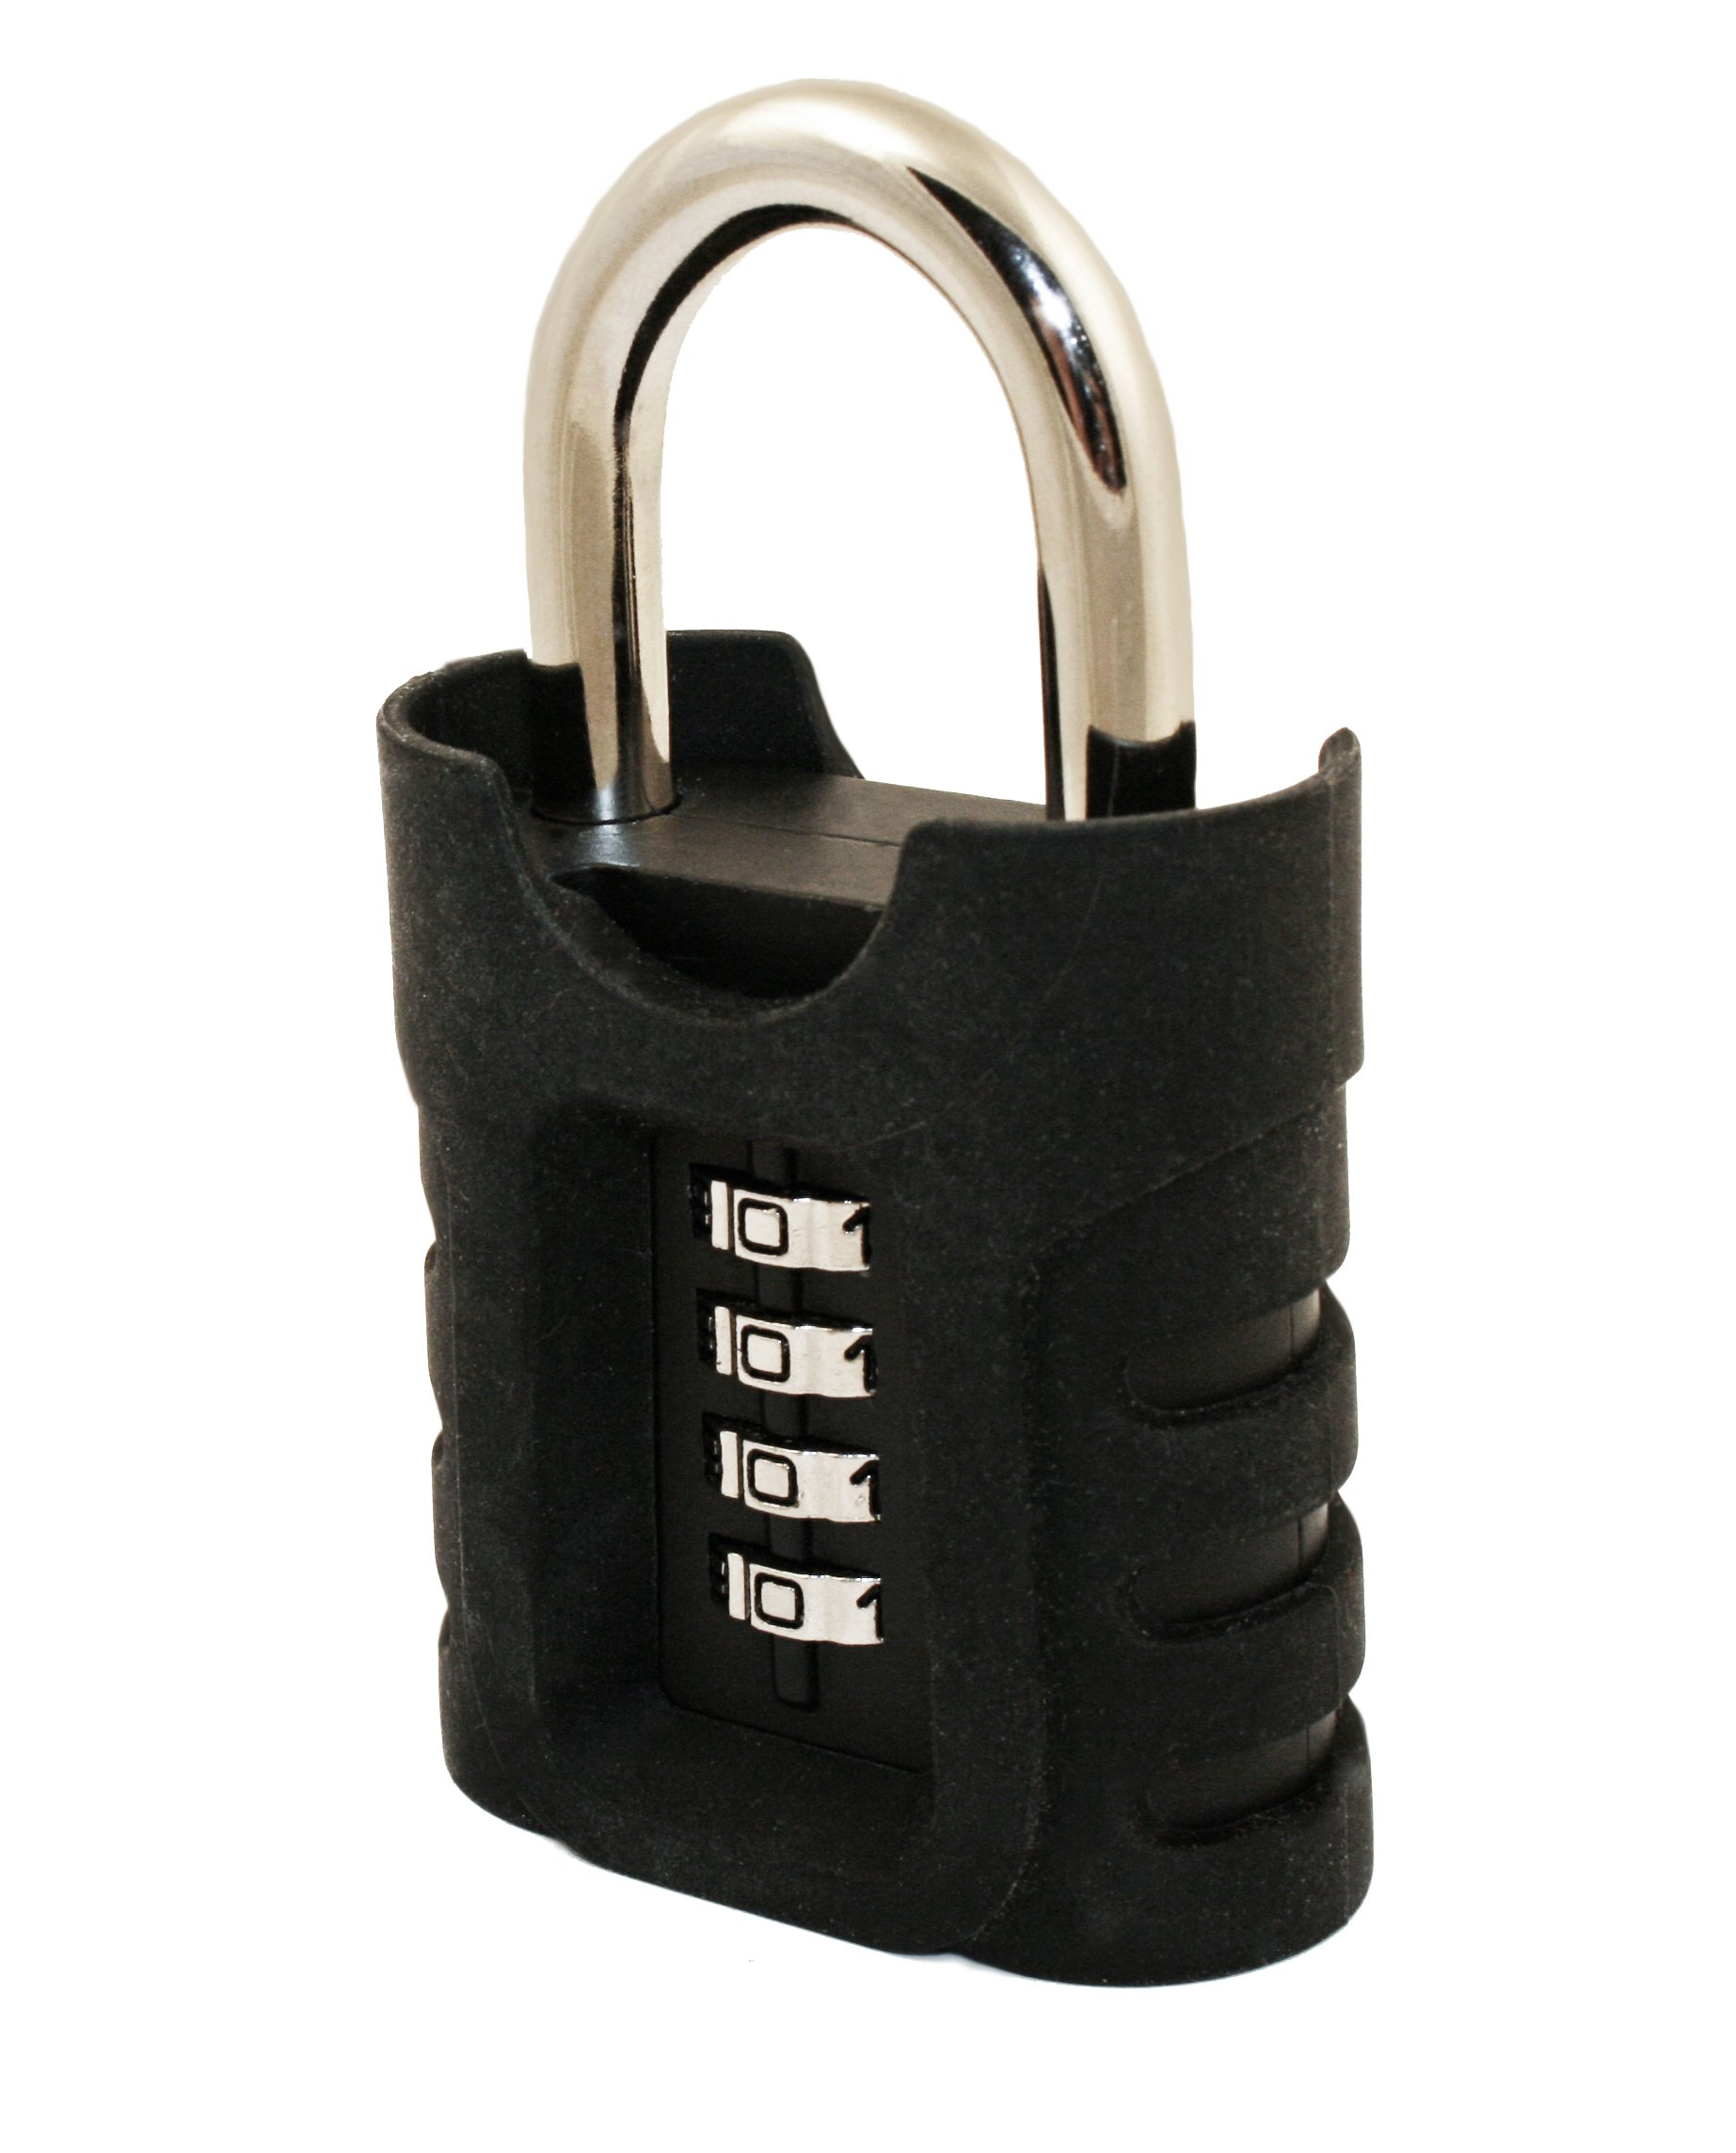 FJM Security SX-973 4-Dial Outdoor Combination Padlock With Protective Silicone Sleeve And Black Finish by FJM Security